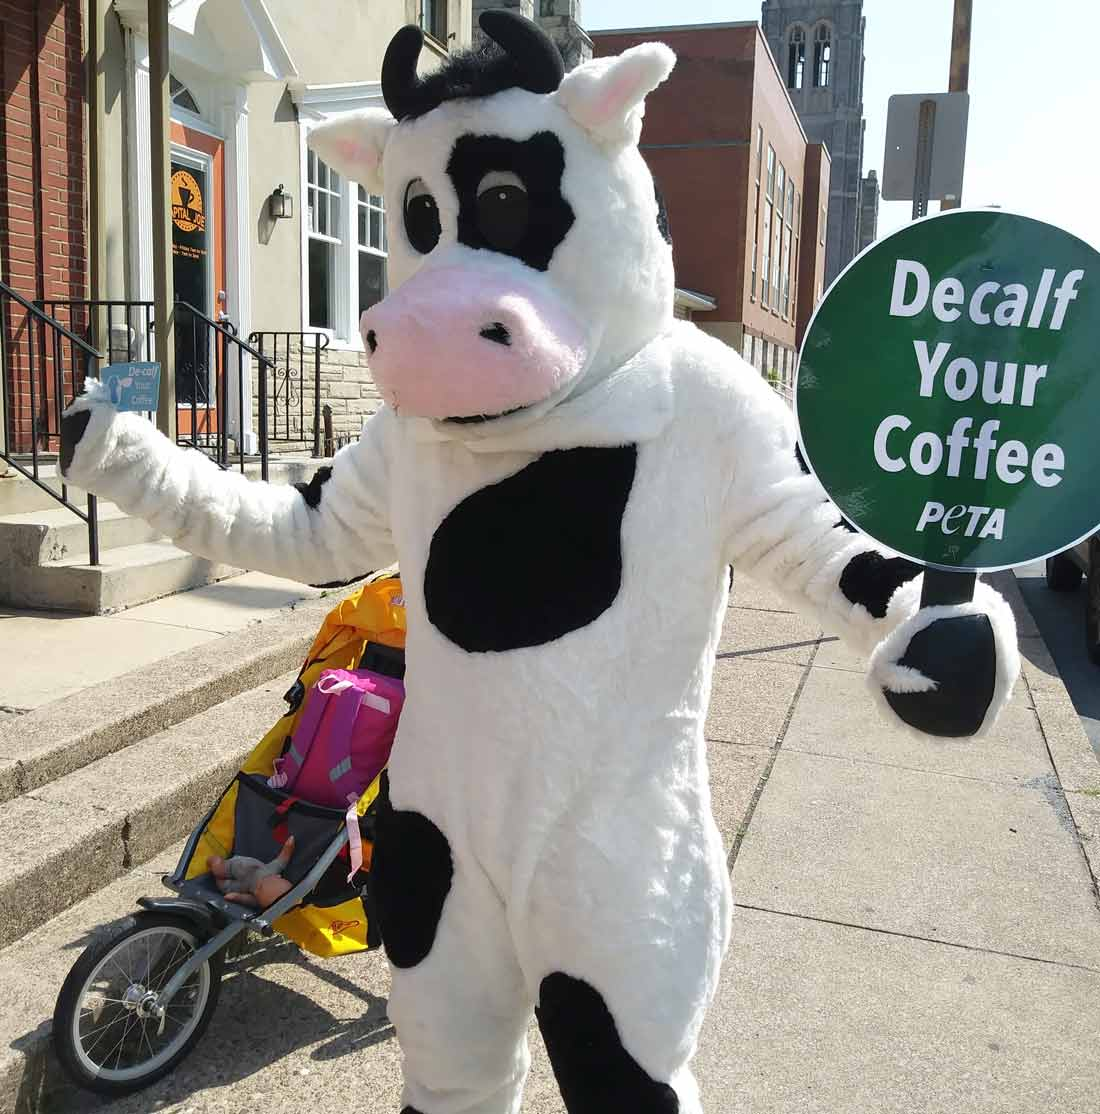 peta mascot cow at a decalf your coffee demo (2018)